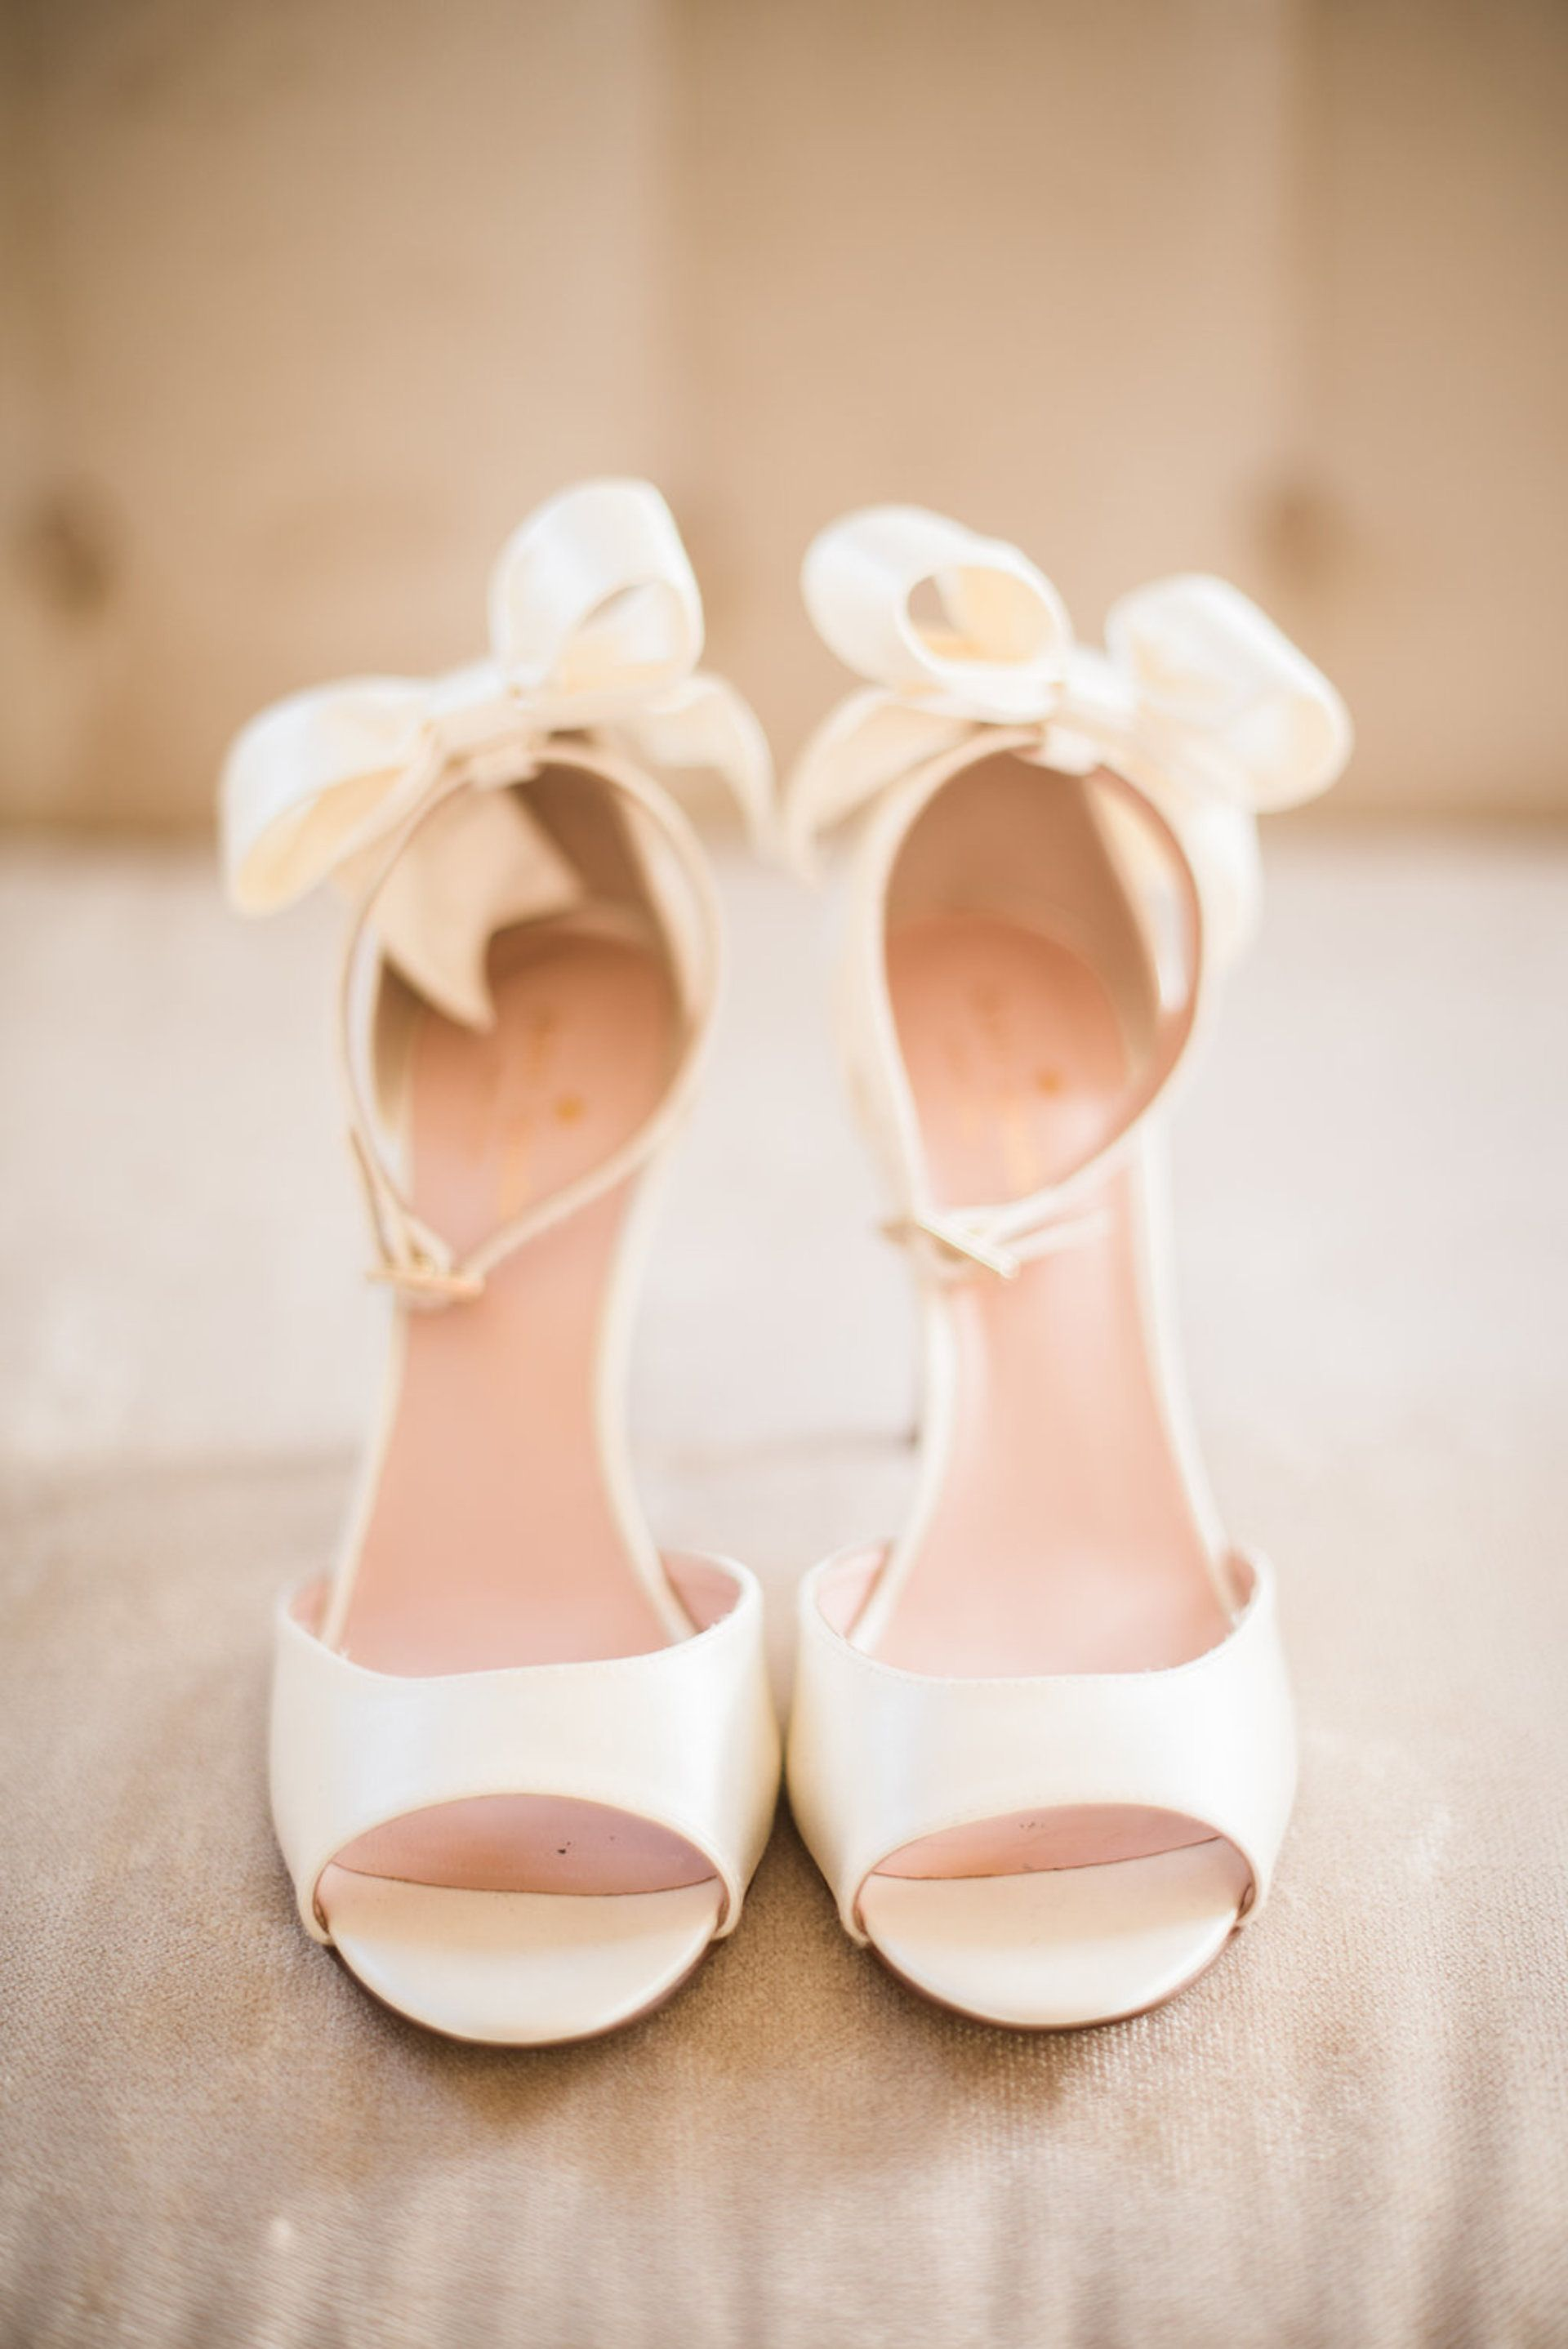 Cream Colored Wedding Shoes Open Toe Heels Bows Shannon Rosan Photography